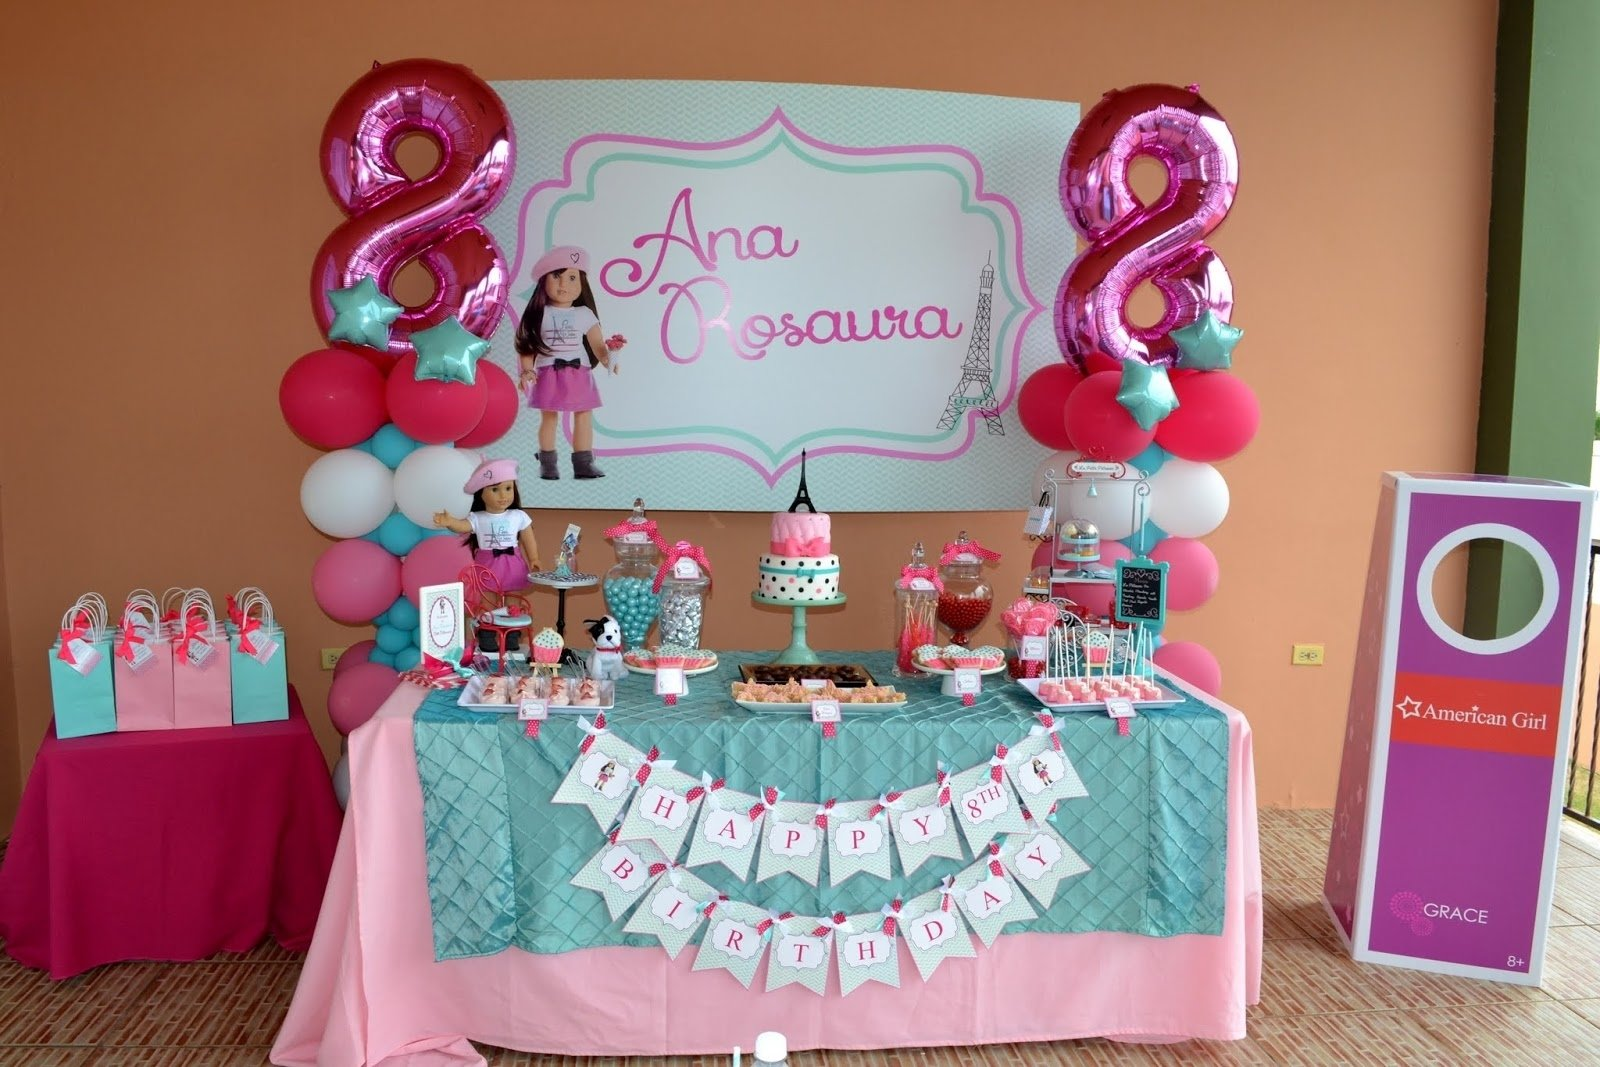 10 Spectacular American Girl Birthday Party Ideas partylicious events pr american girl cupcake party 2 2020